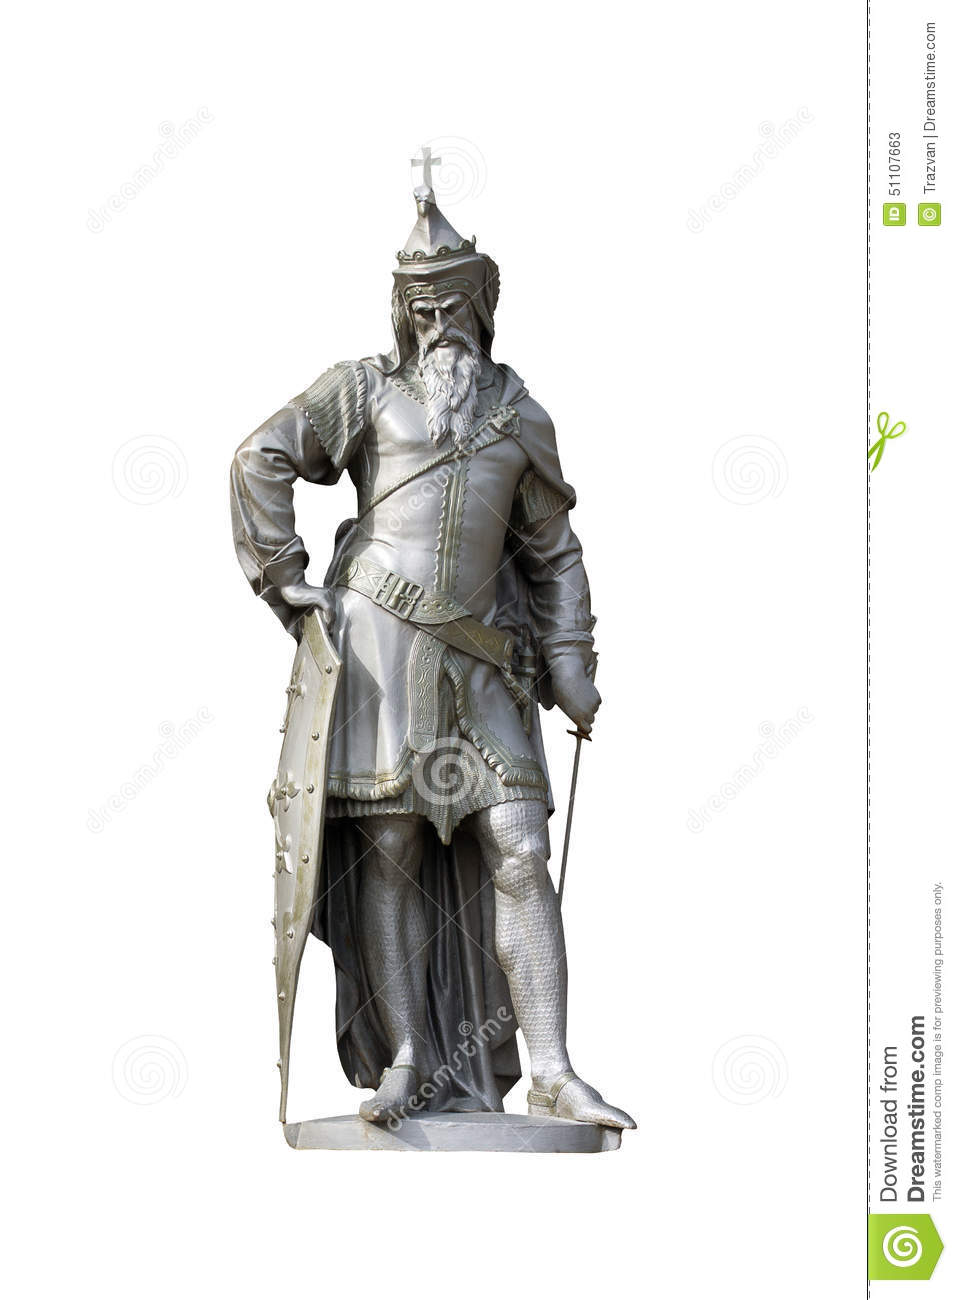 Medieval Christian king statue isolated on white